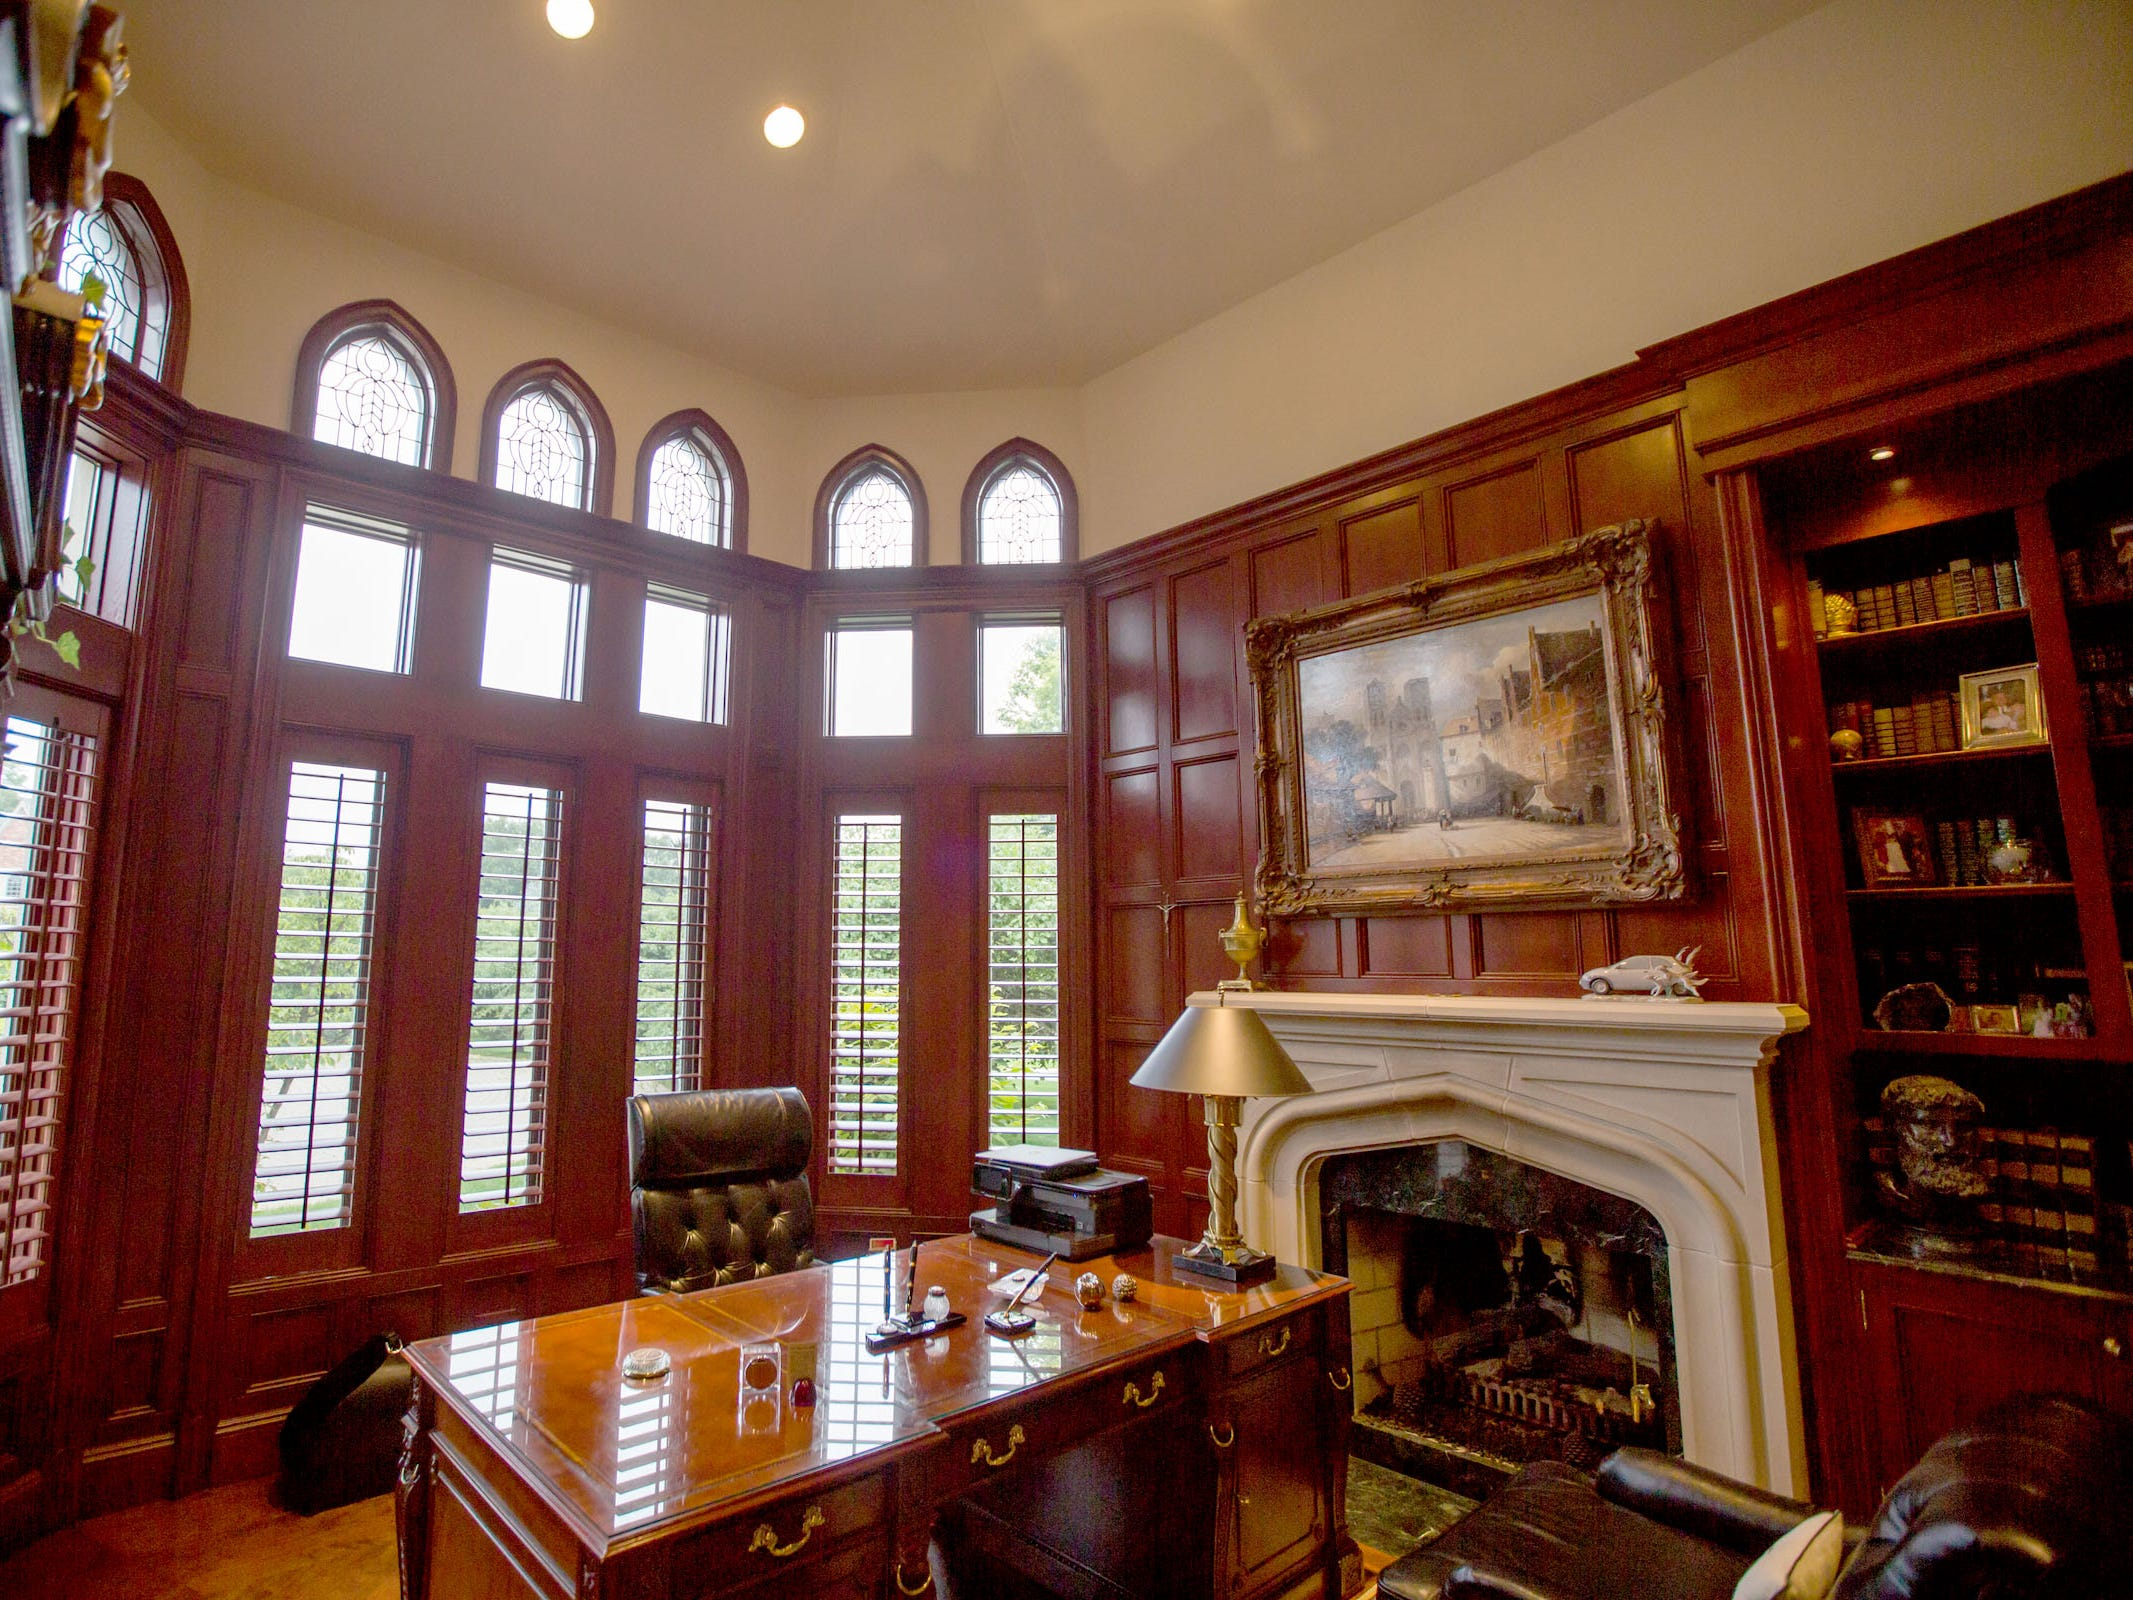 The library is lined with quarter-sawn mahogany paneling around a stone fireplace.